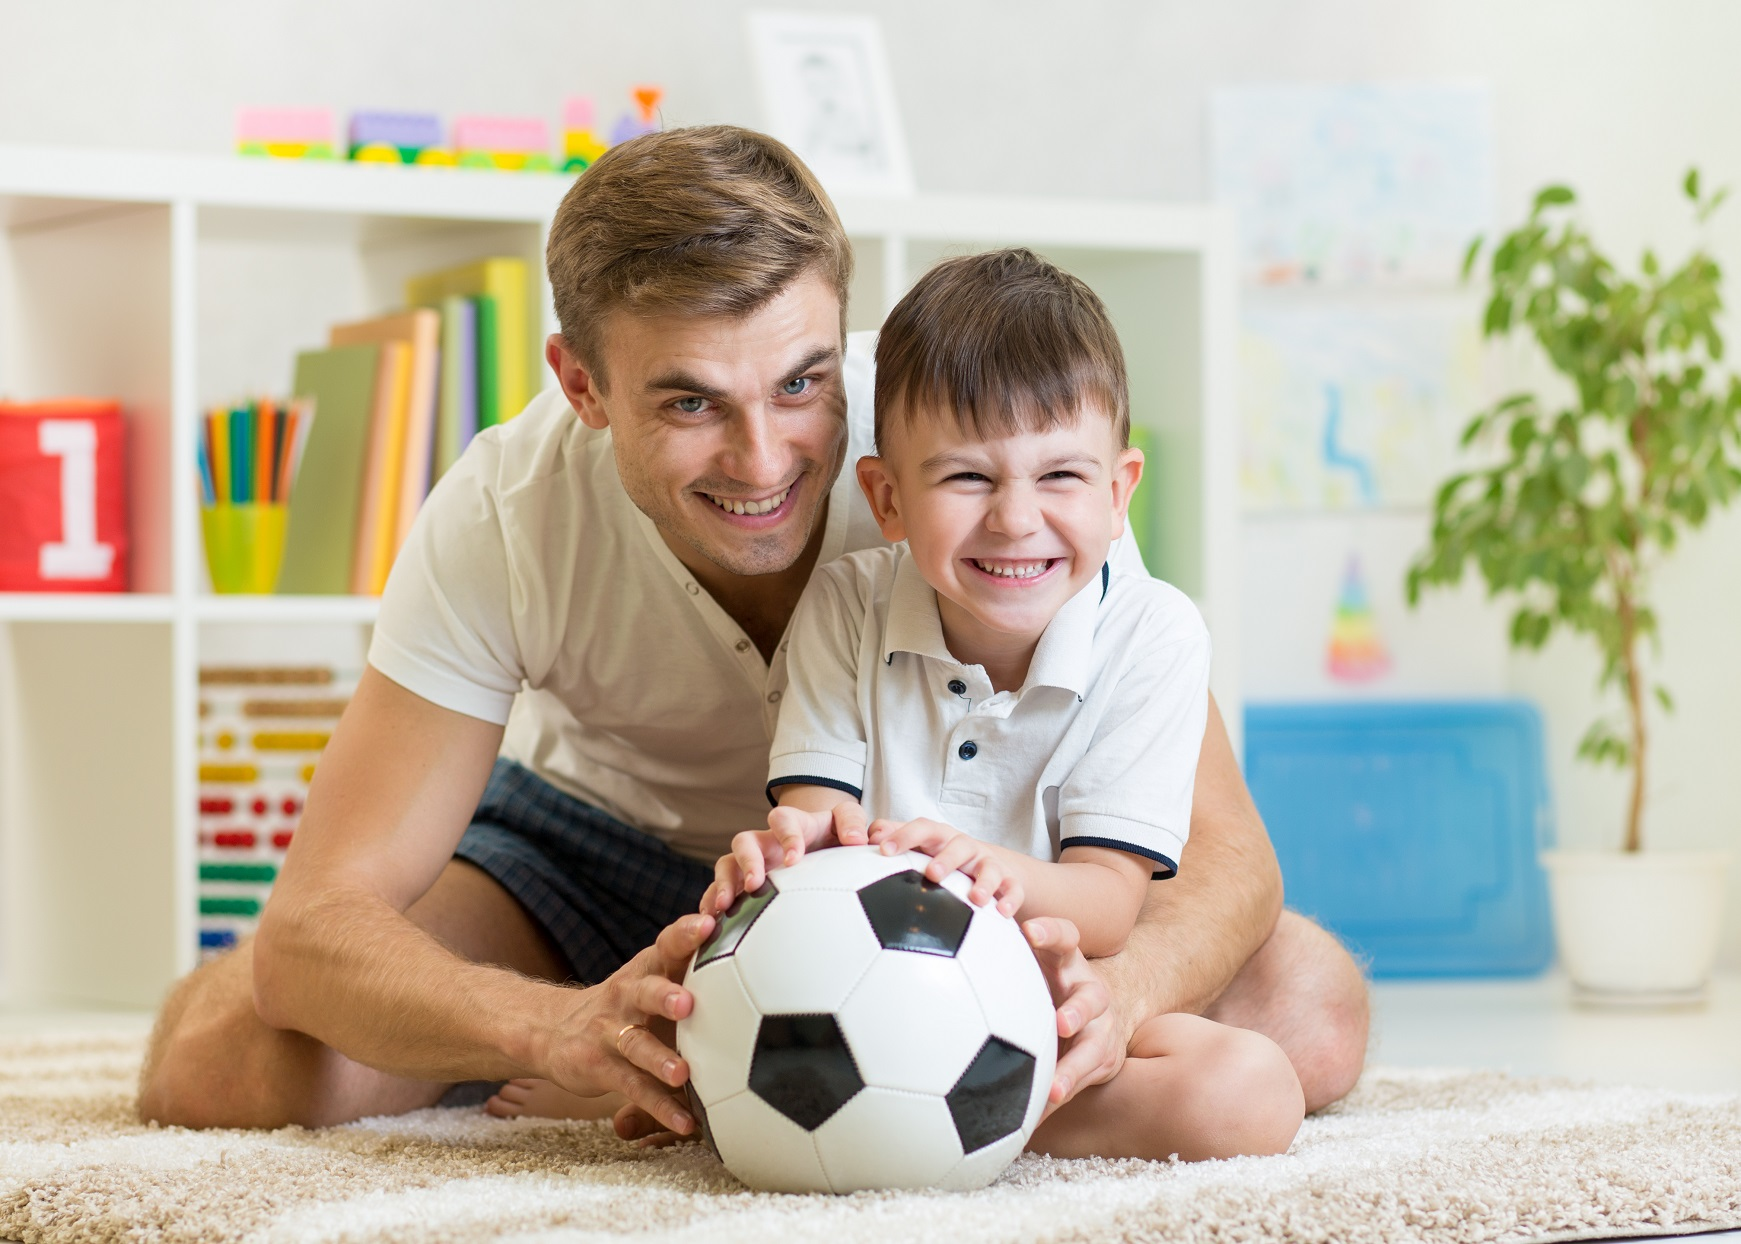 dad and son playing soccer indoors 34975